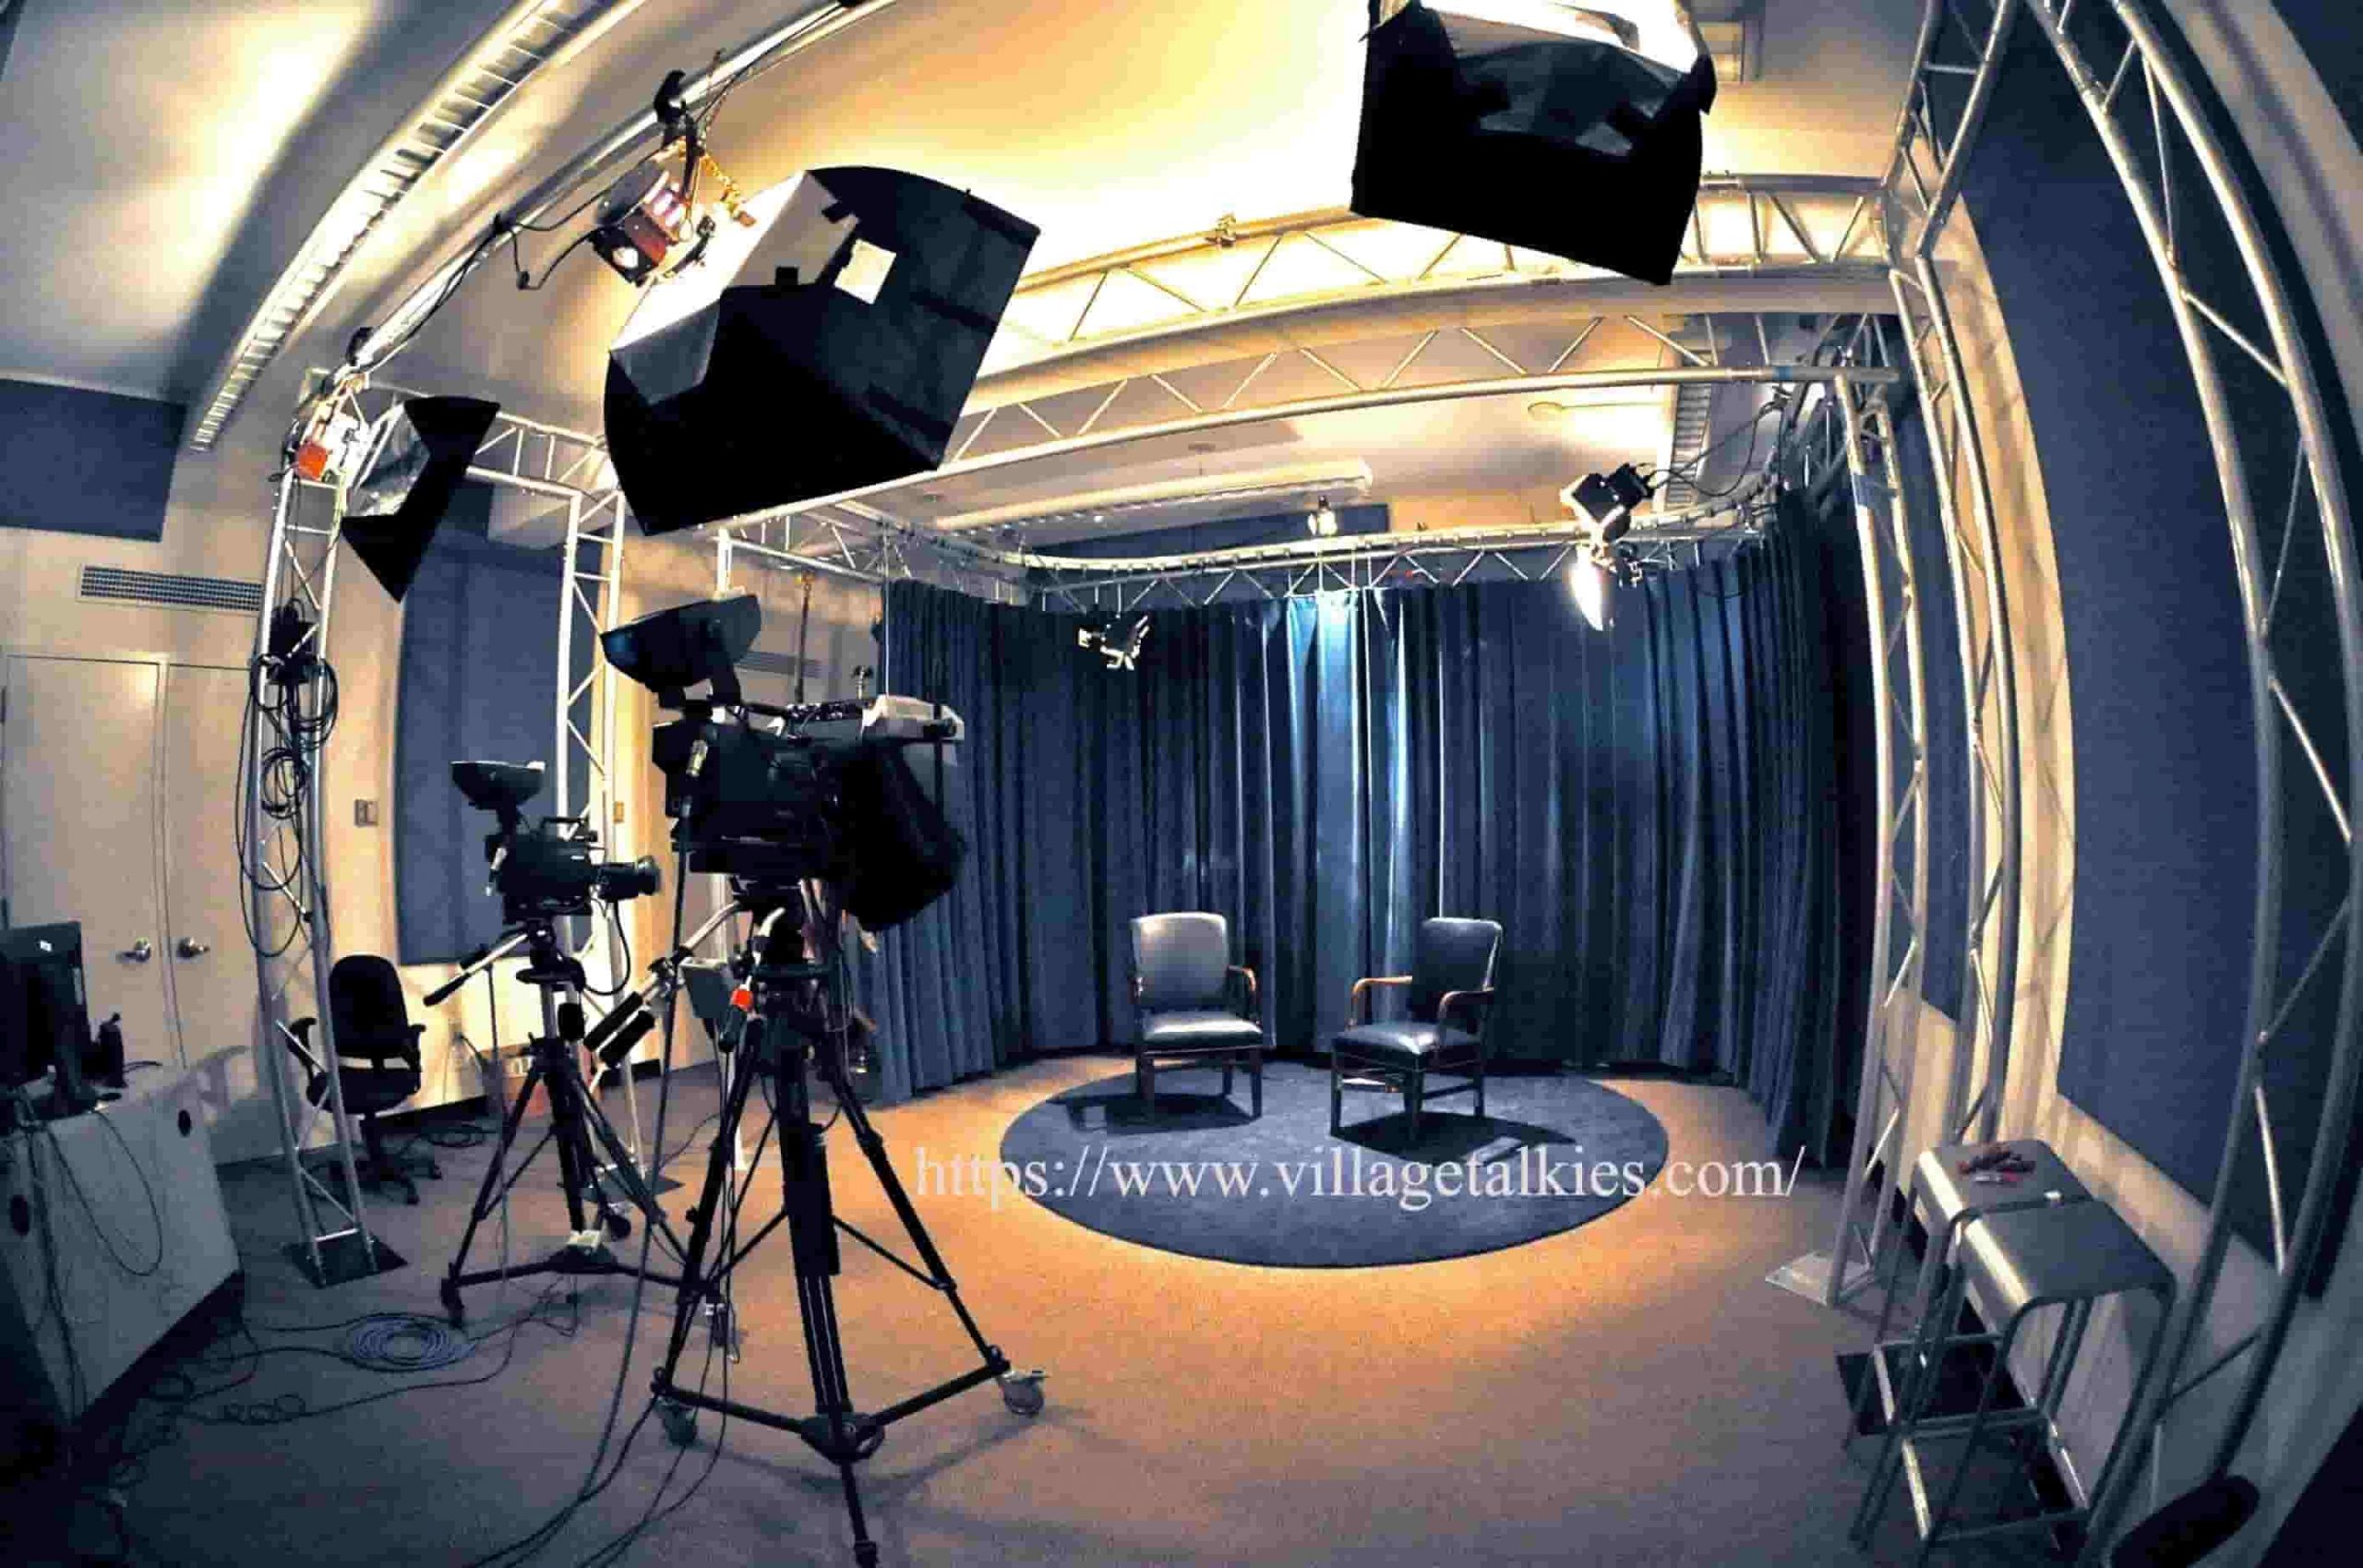 What are the 5 Best Corporate Video Production Companies in Chennai?